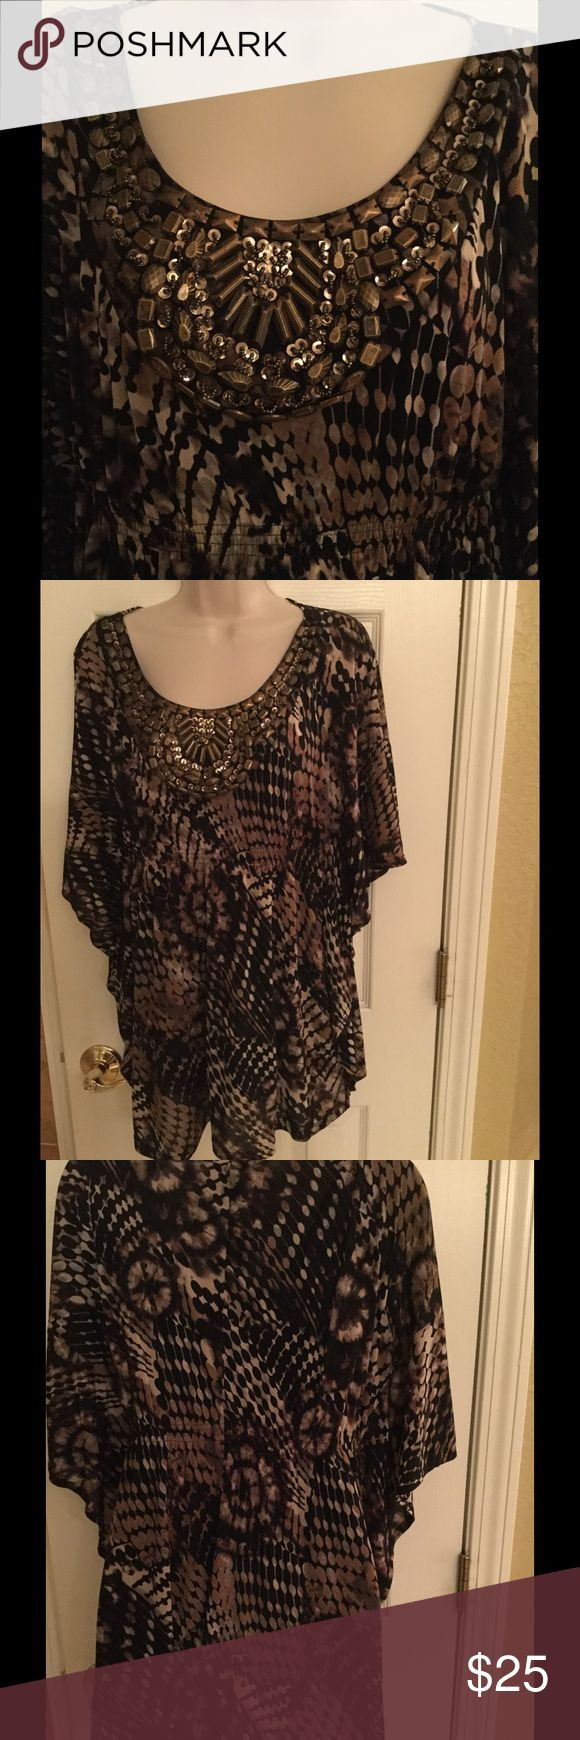 """Small Style & Co. Embellished Batwing Top/Tunic Super cute abstract patterned semi-sheer blouse in shades of black, cream, beige and olive green features metallic jeweled embellishments at the neckline and an elasticized waist. Comes with an attached black camisole. 100% nylon. Approximately 30"""" long and 21"""" across the chest. Runs a bit large so I would say it is really a medium sized top. Style & Co Tops Tunics"""